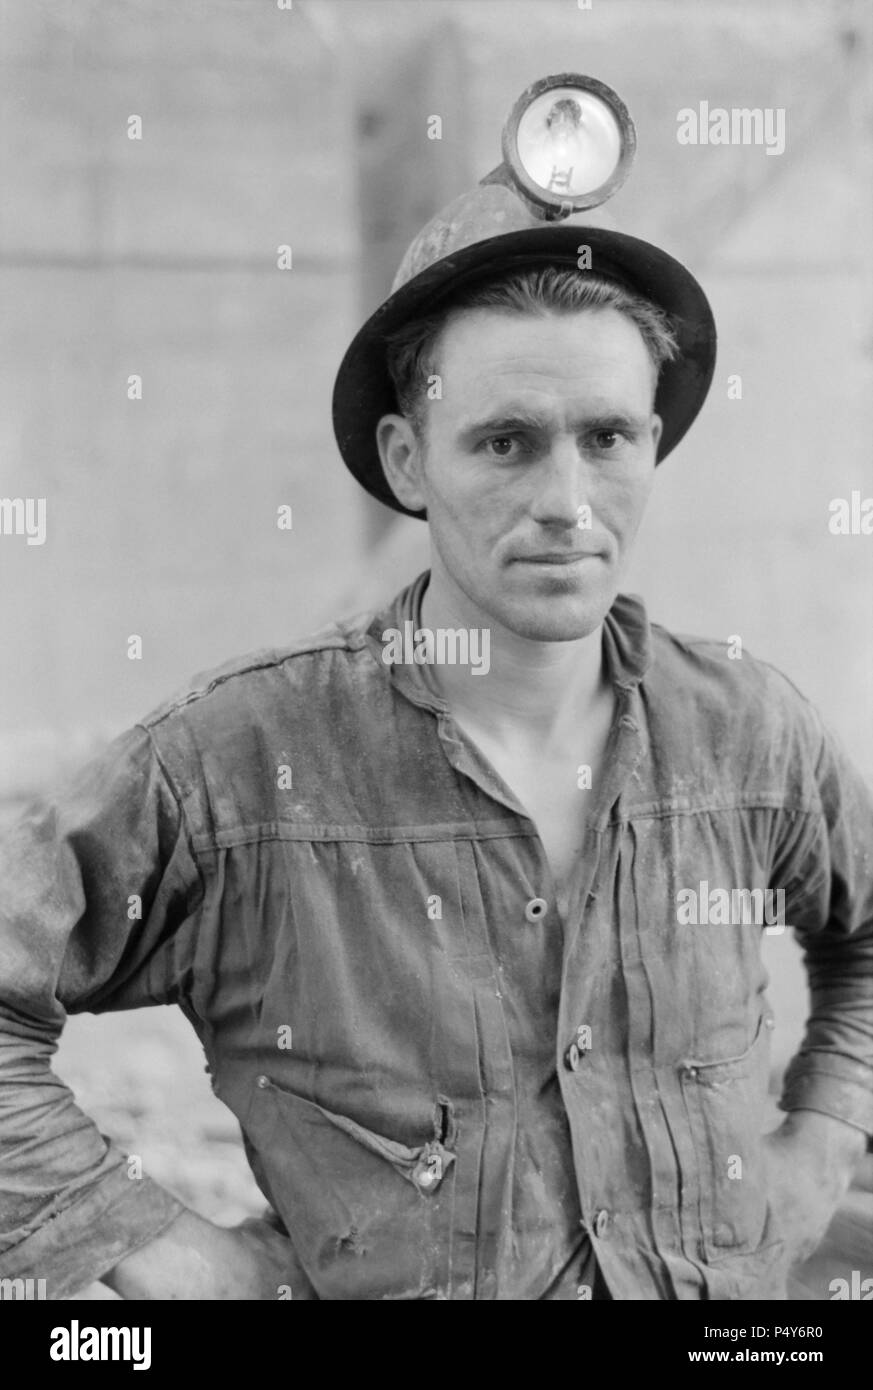 Mine Foreman, Mogollon, New Mexico, USA, Russell Lee, Farm Security Administration, June 1940 - Stock Image